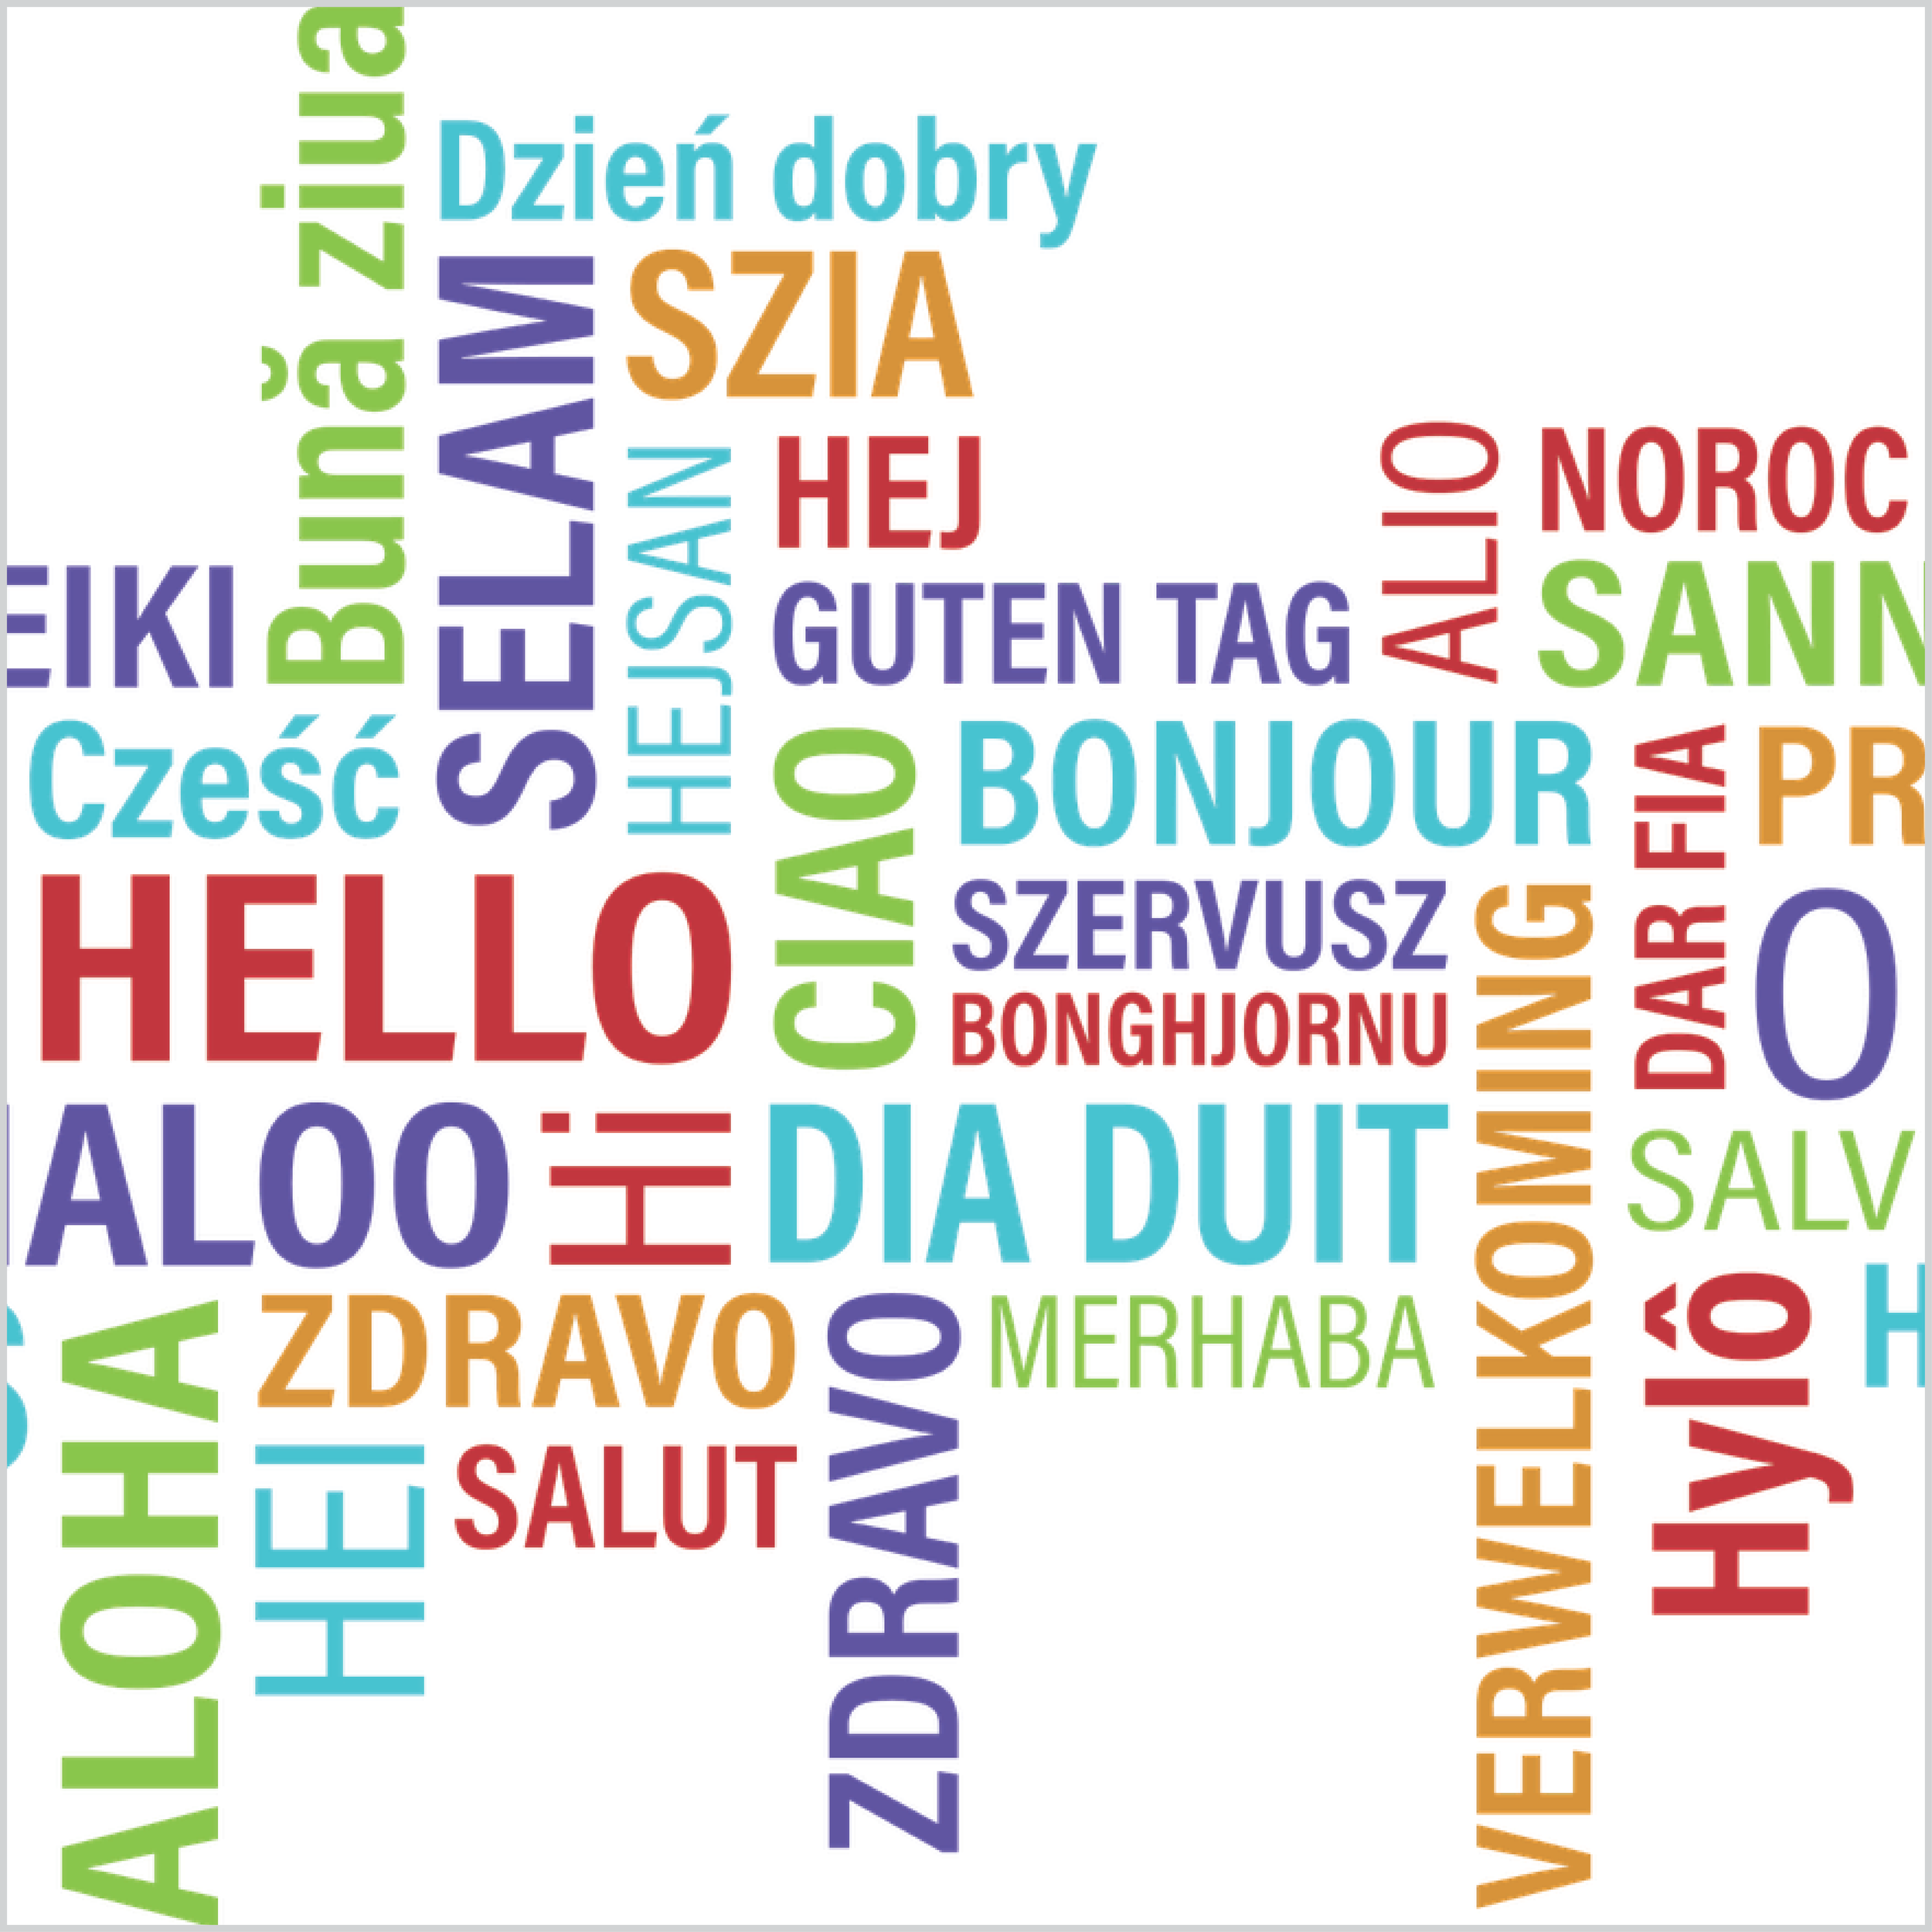 Learn how to say hello in three different languages